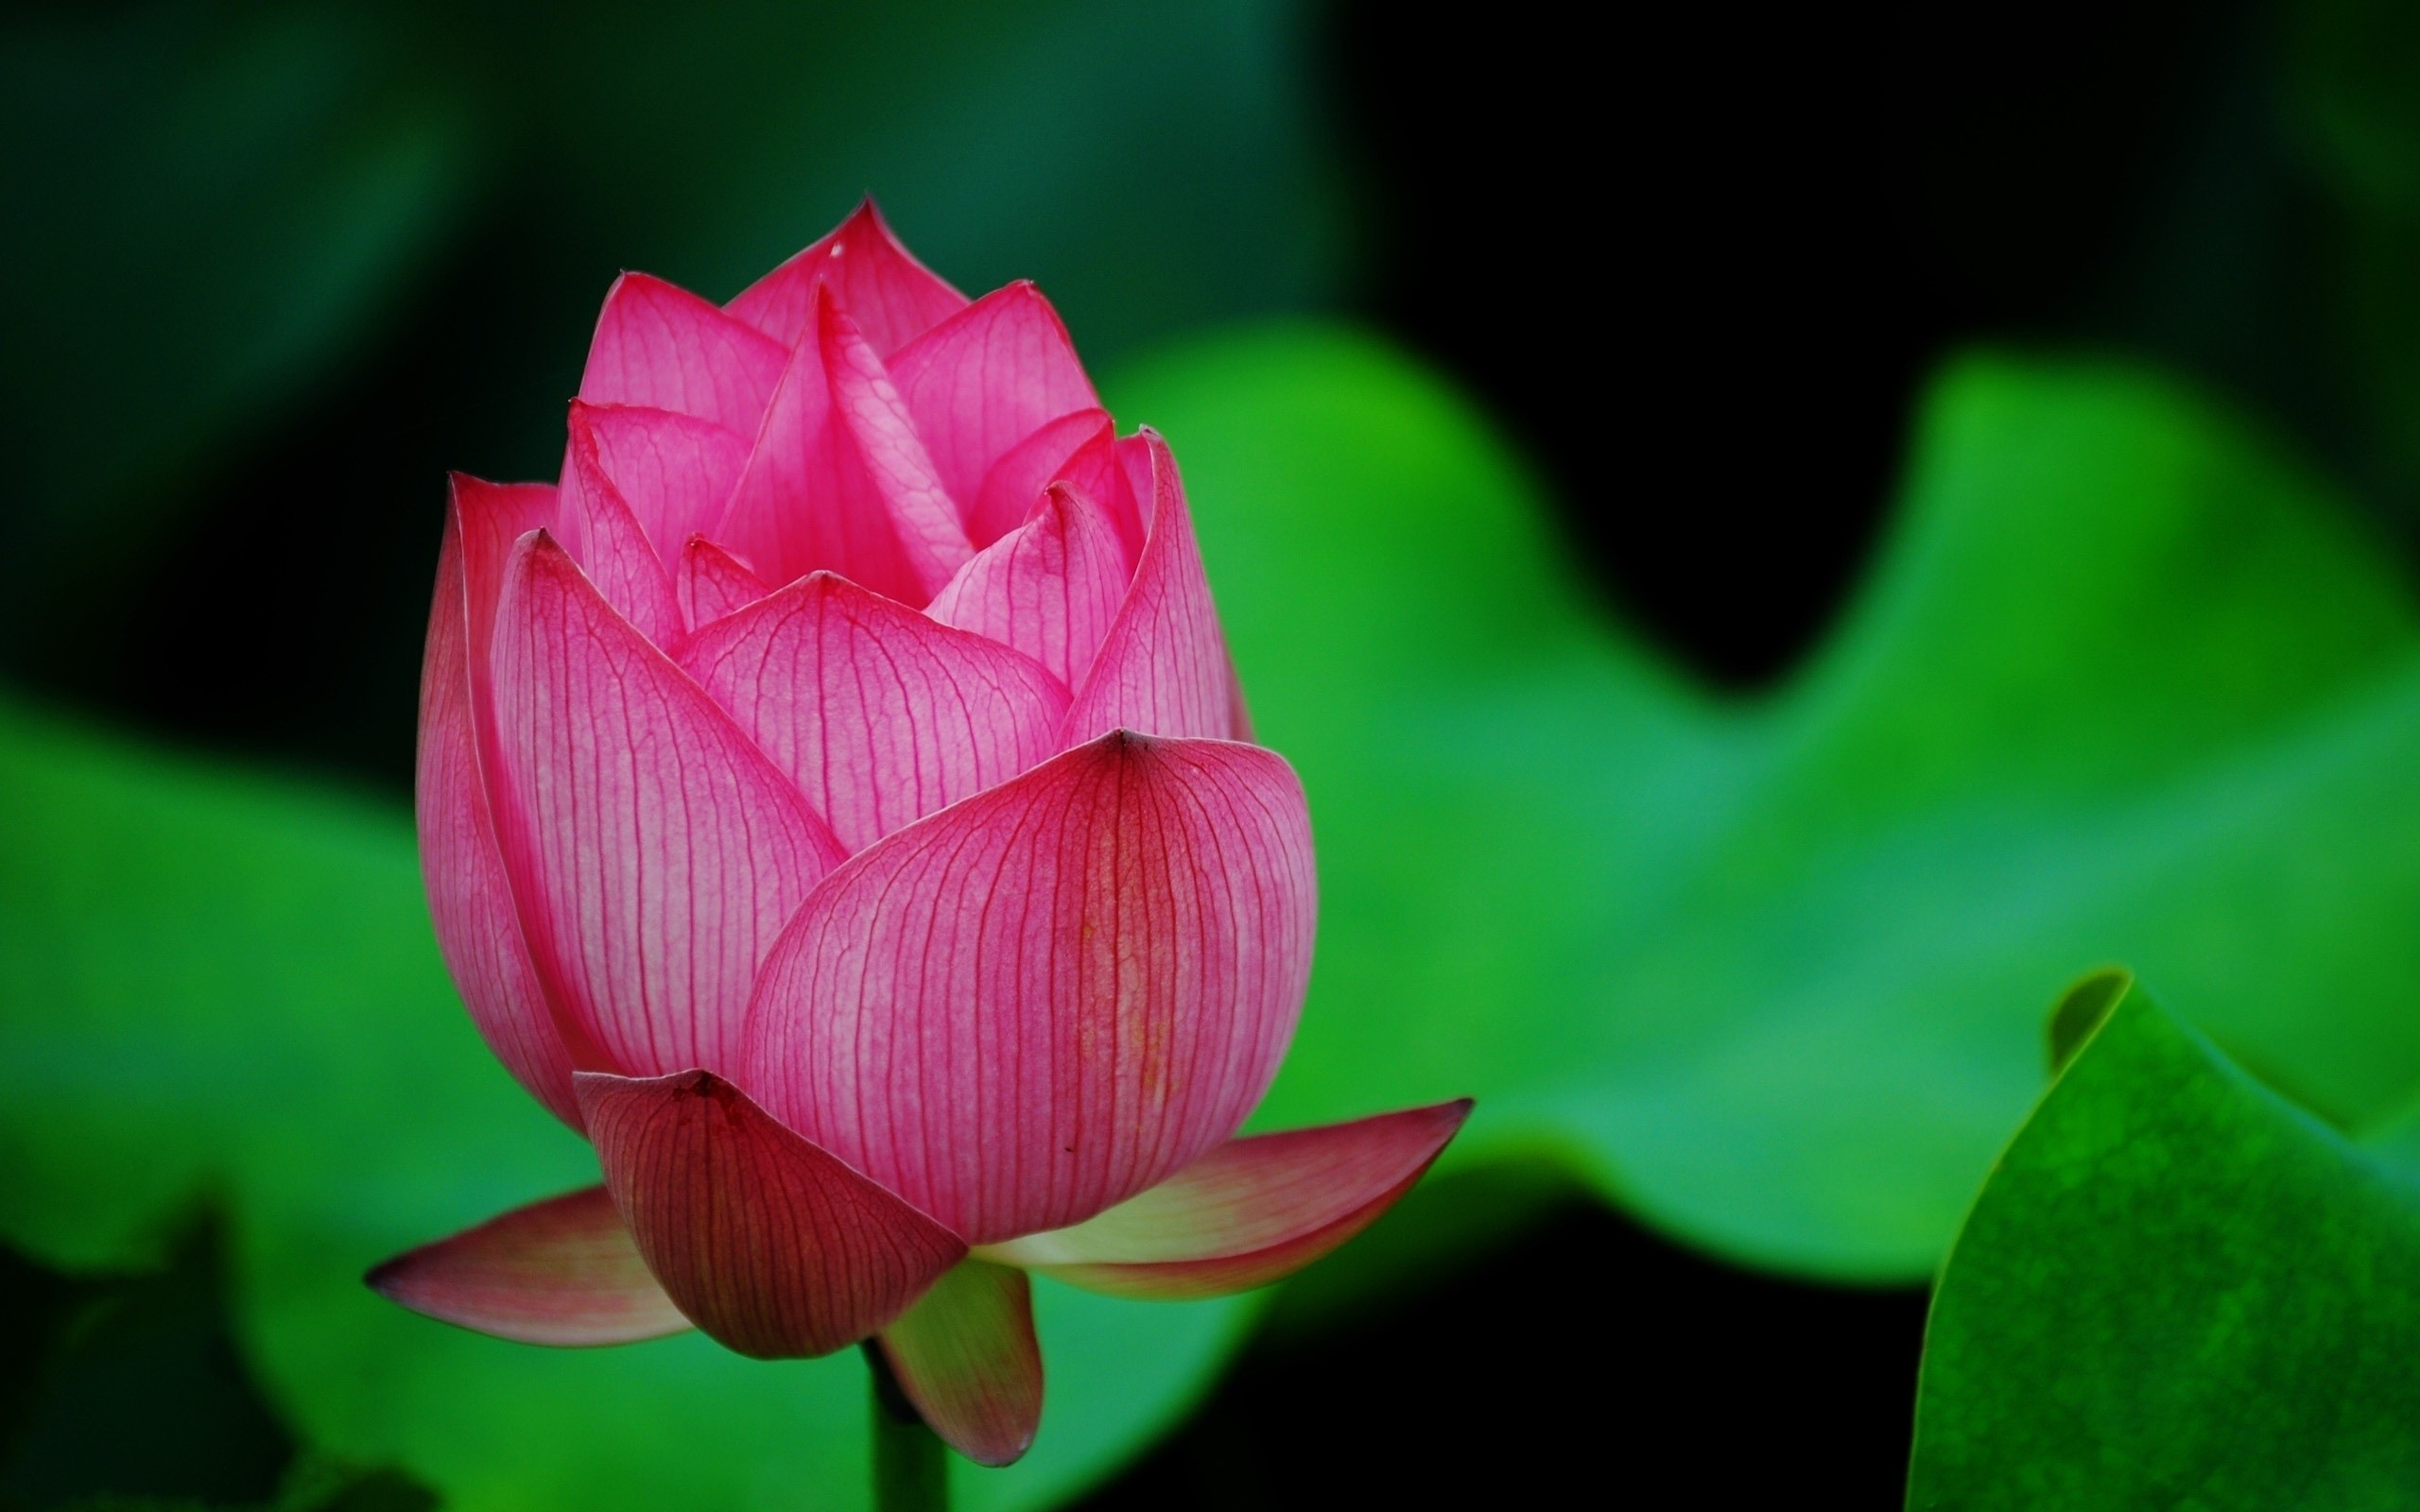 2560x1440 Lotus Flower Pink 1440p Resolution Hd 4k Wallpapers